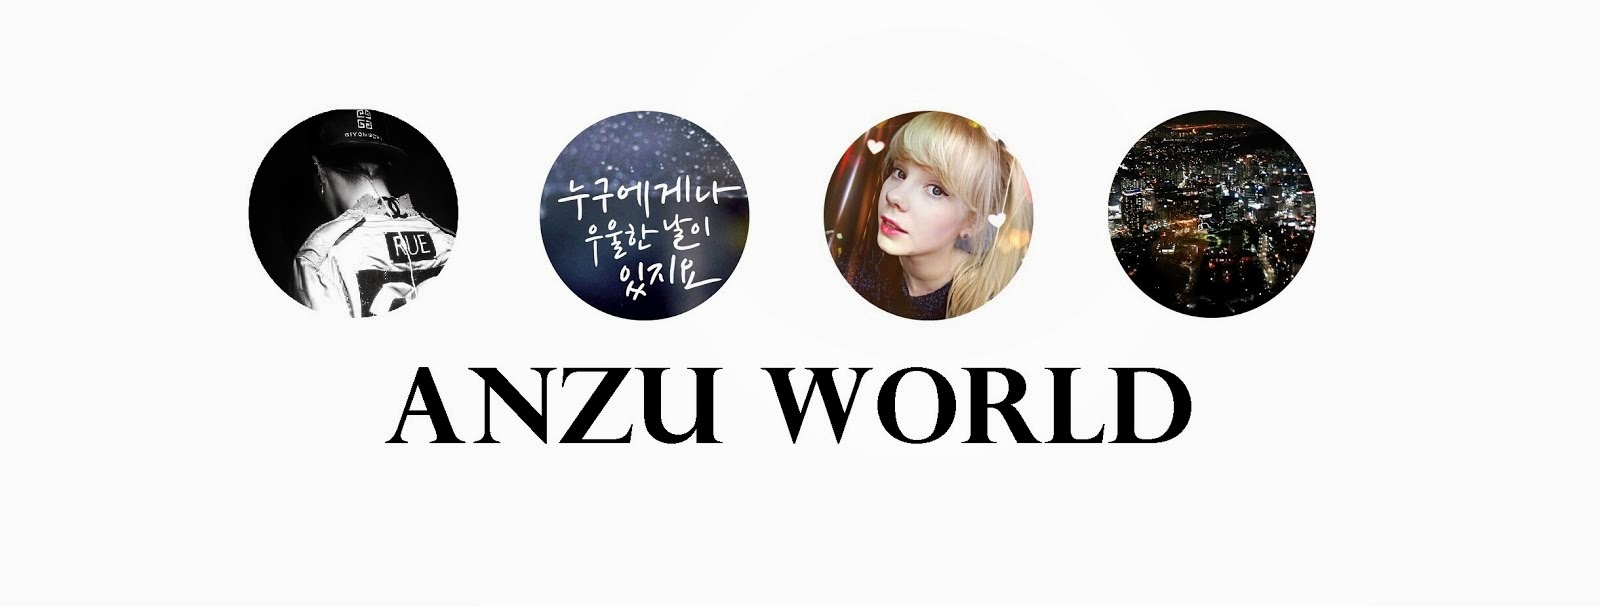 anzu world